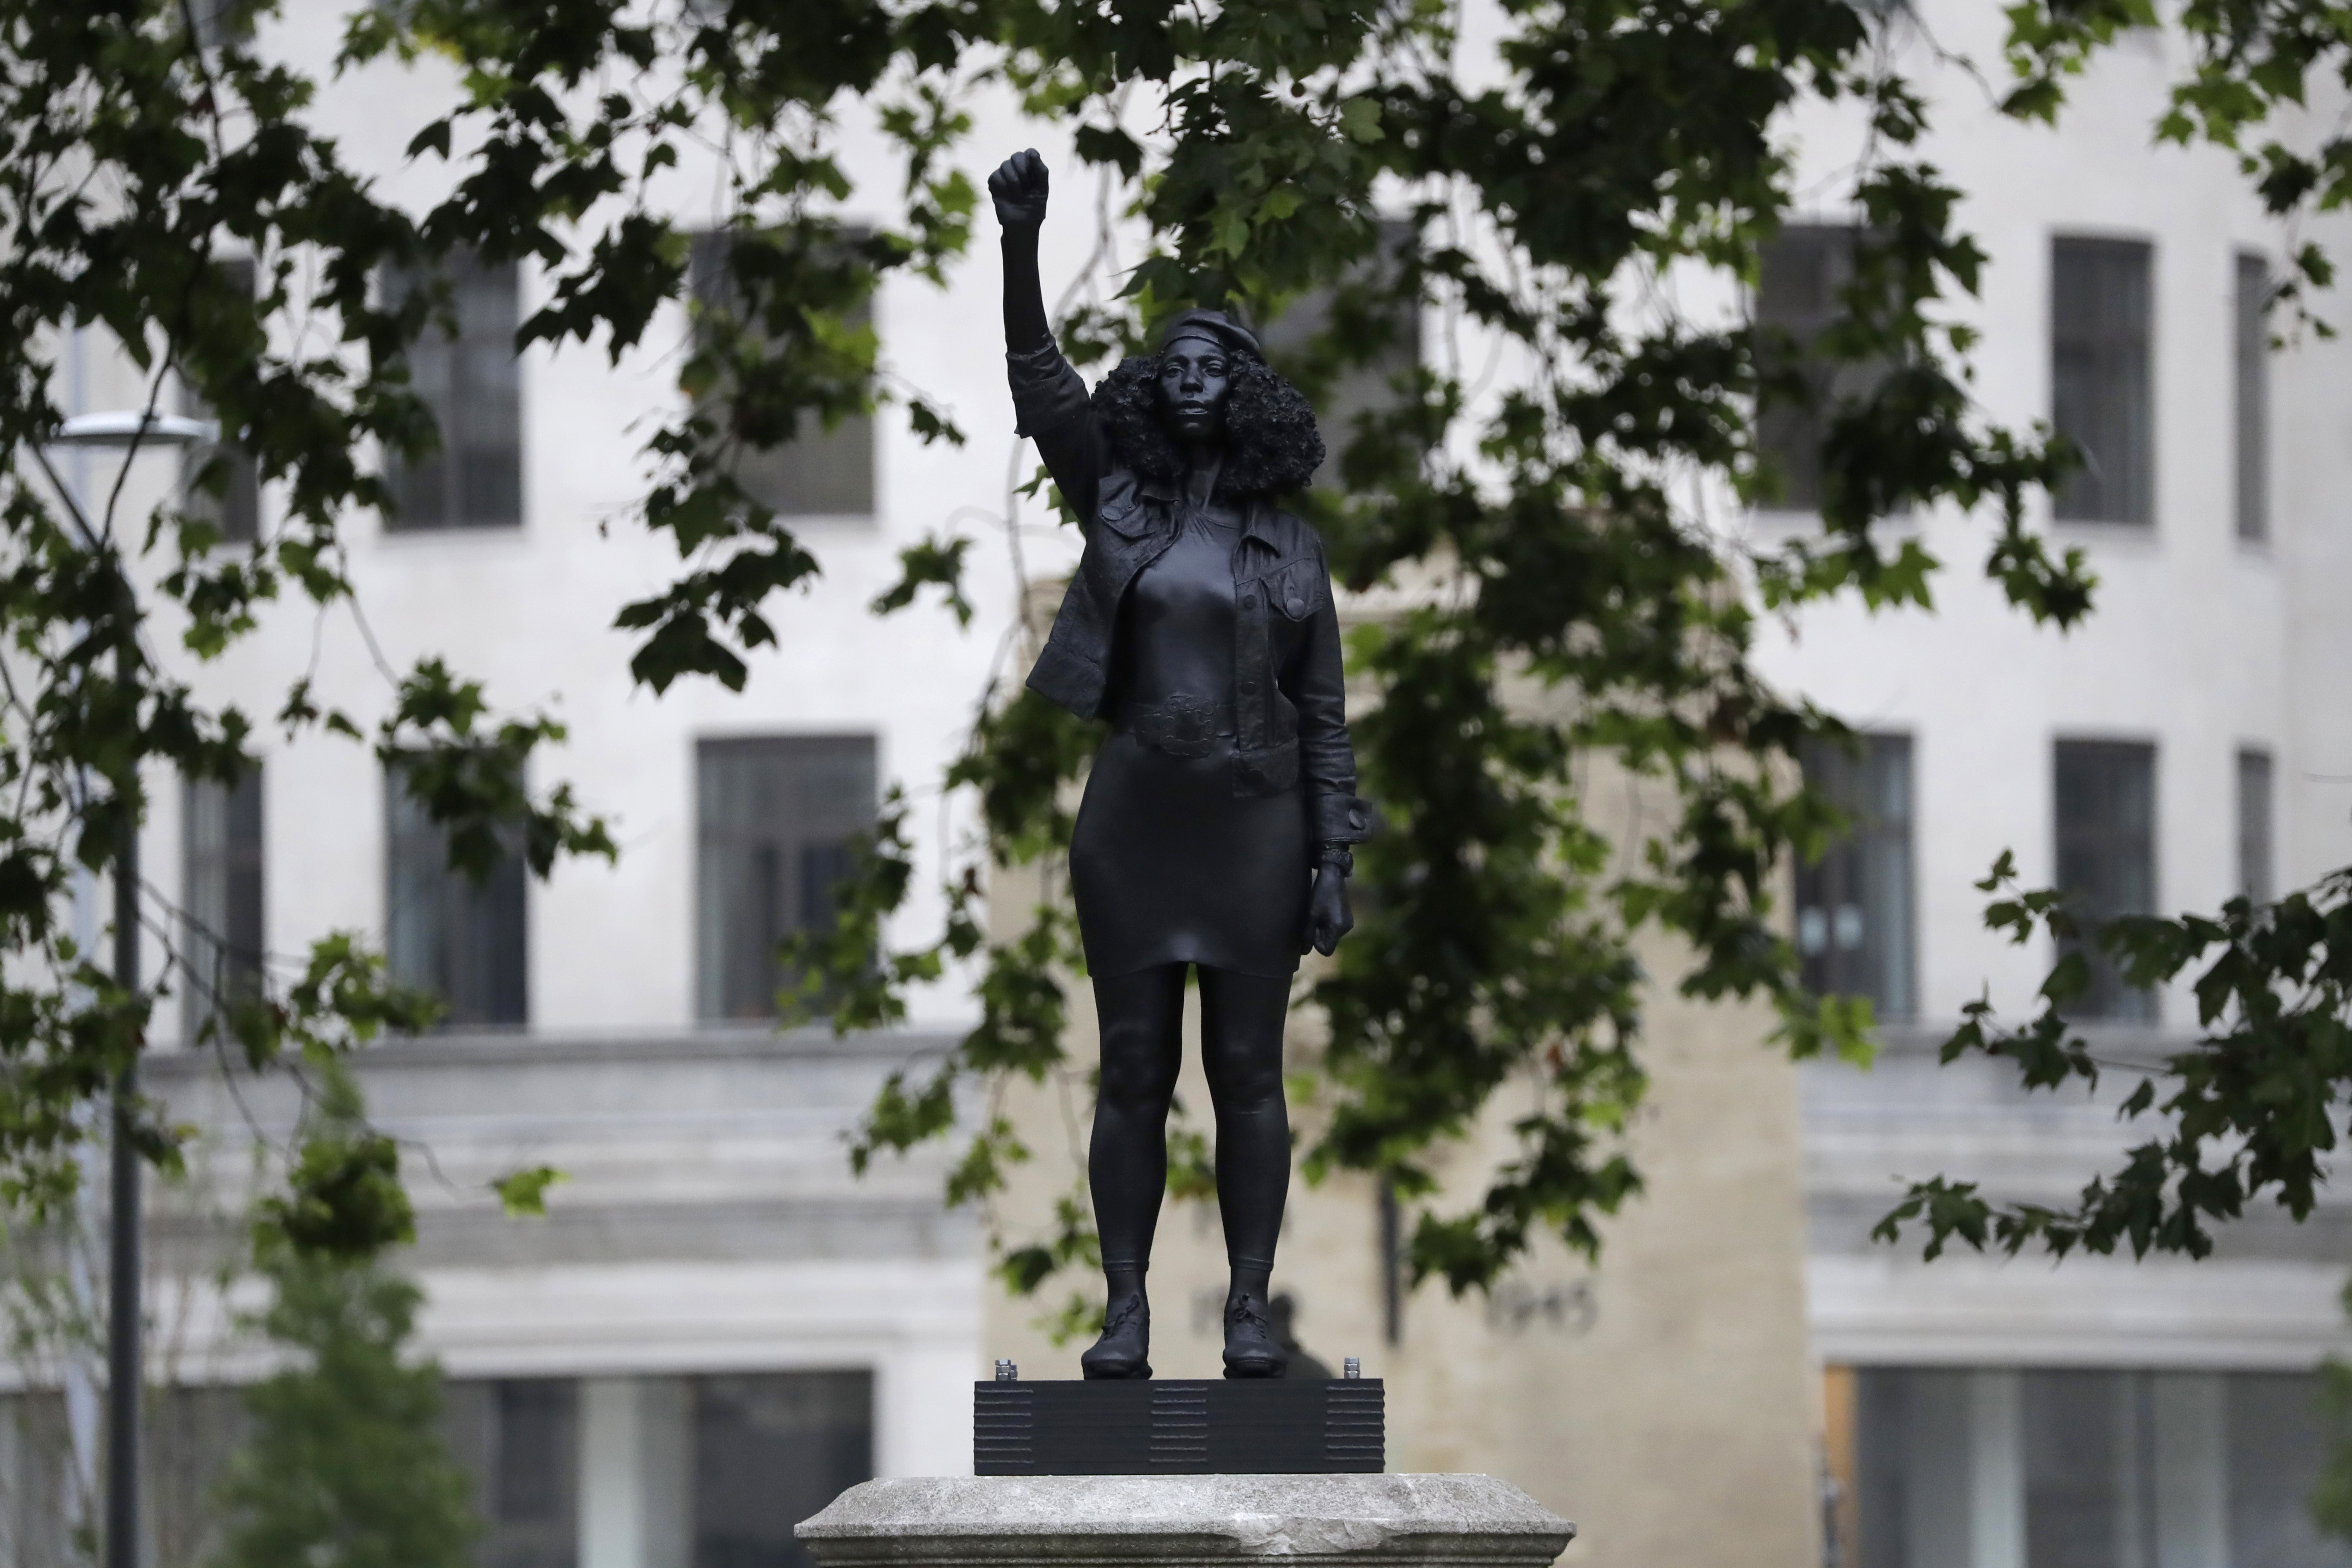 Toppled UK statue of slave trader quietly replaced with sculpture of Black Lives Matter protester – Fox News